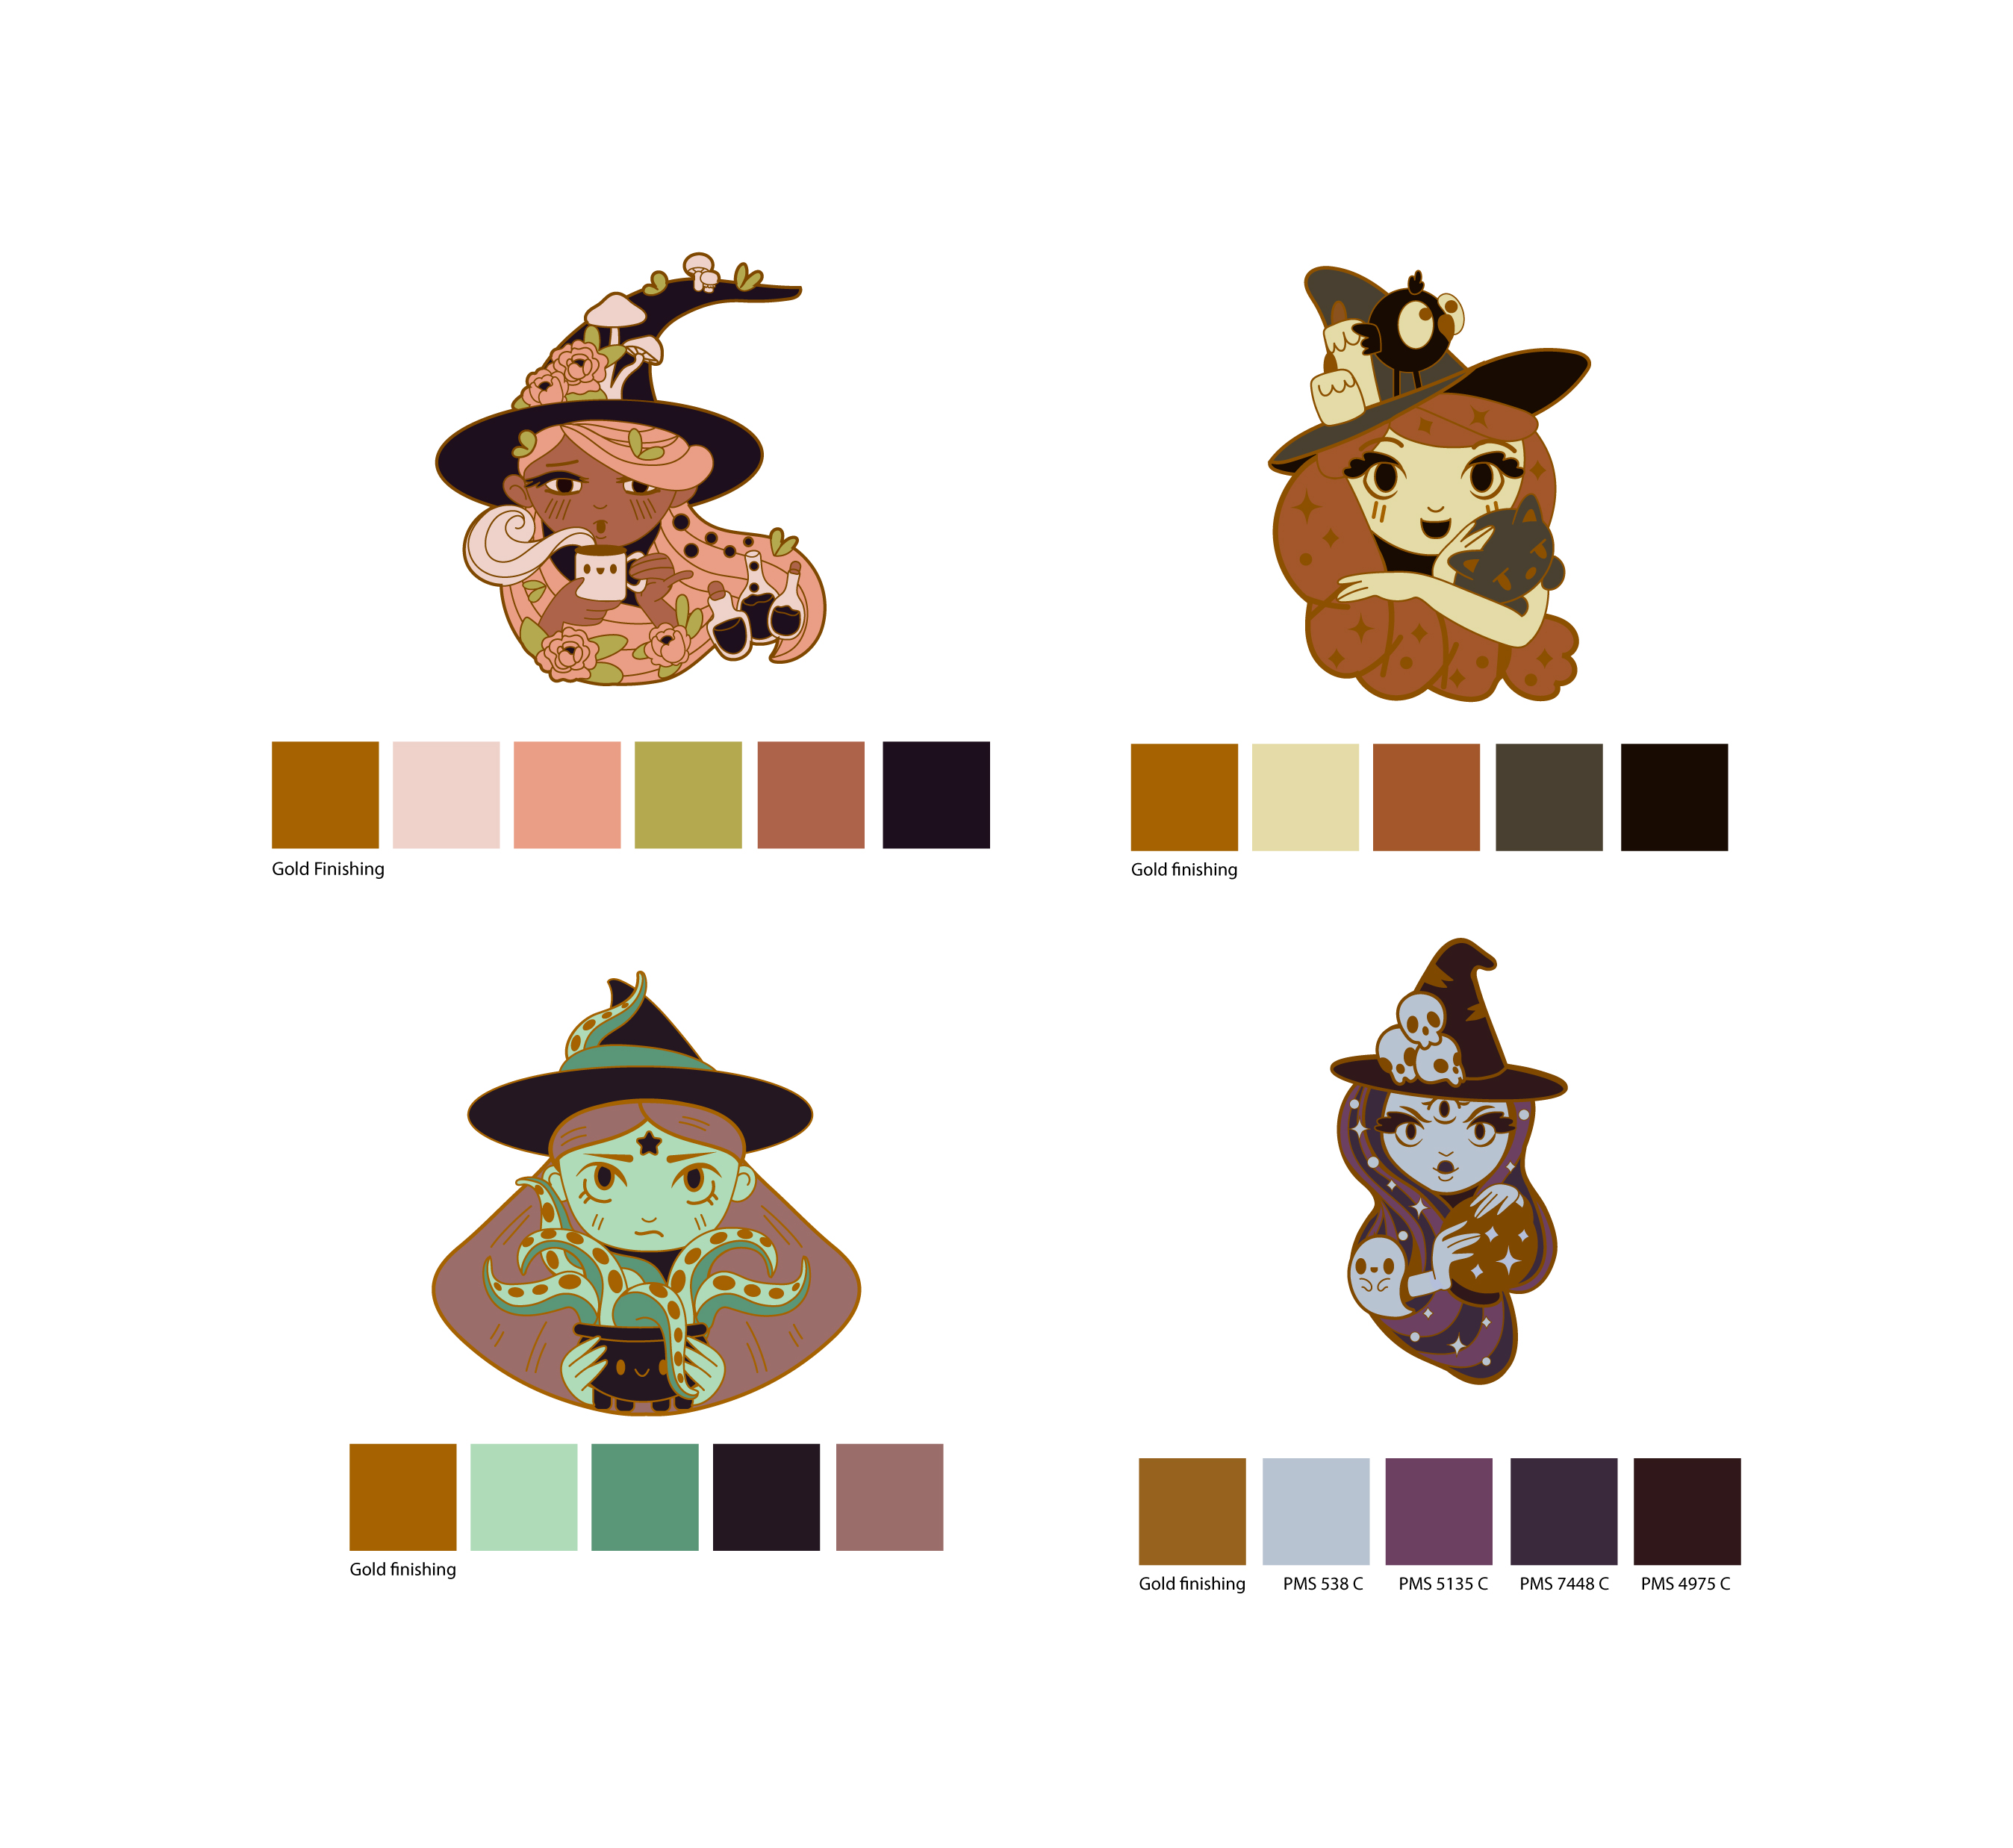 Witch Enamel Pin Concepts